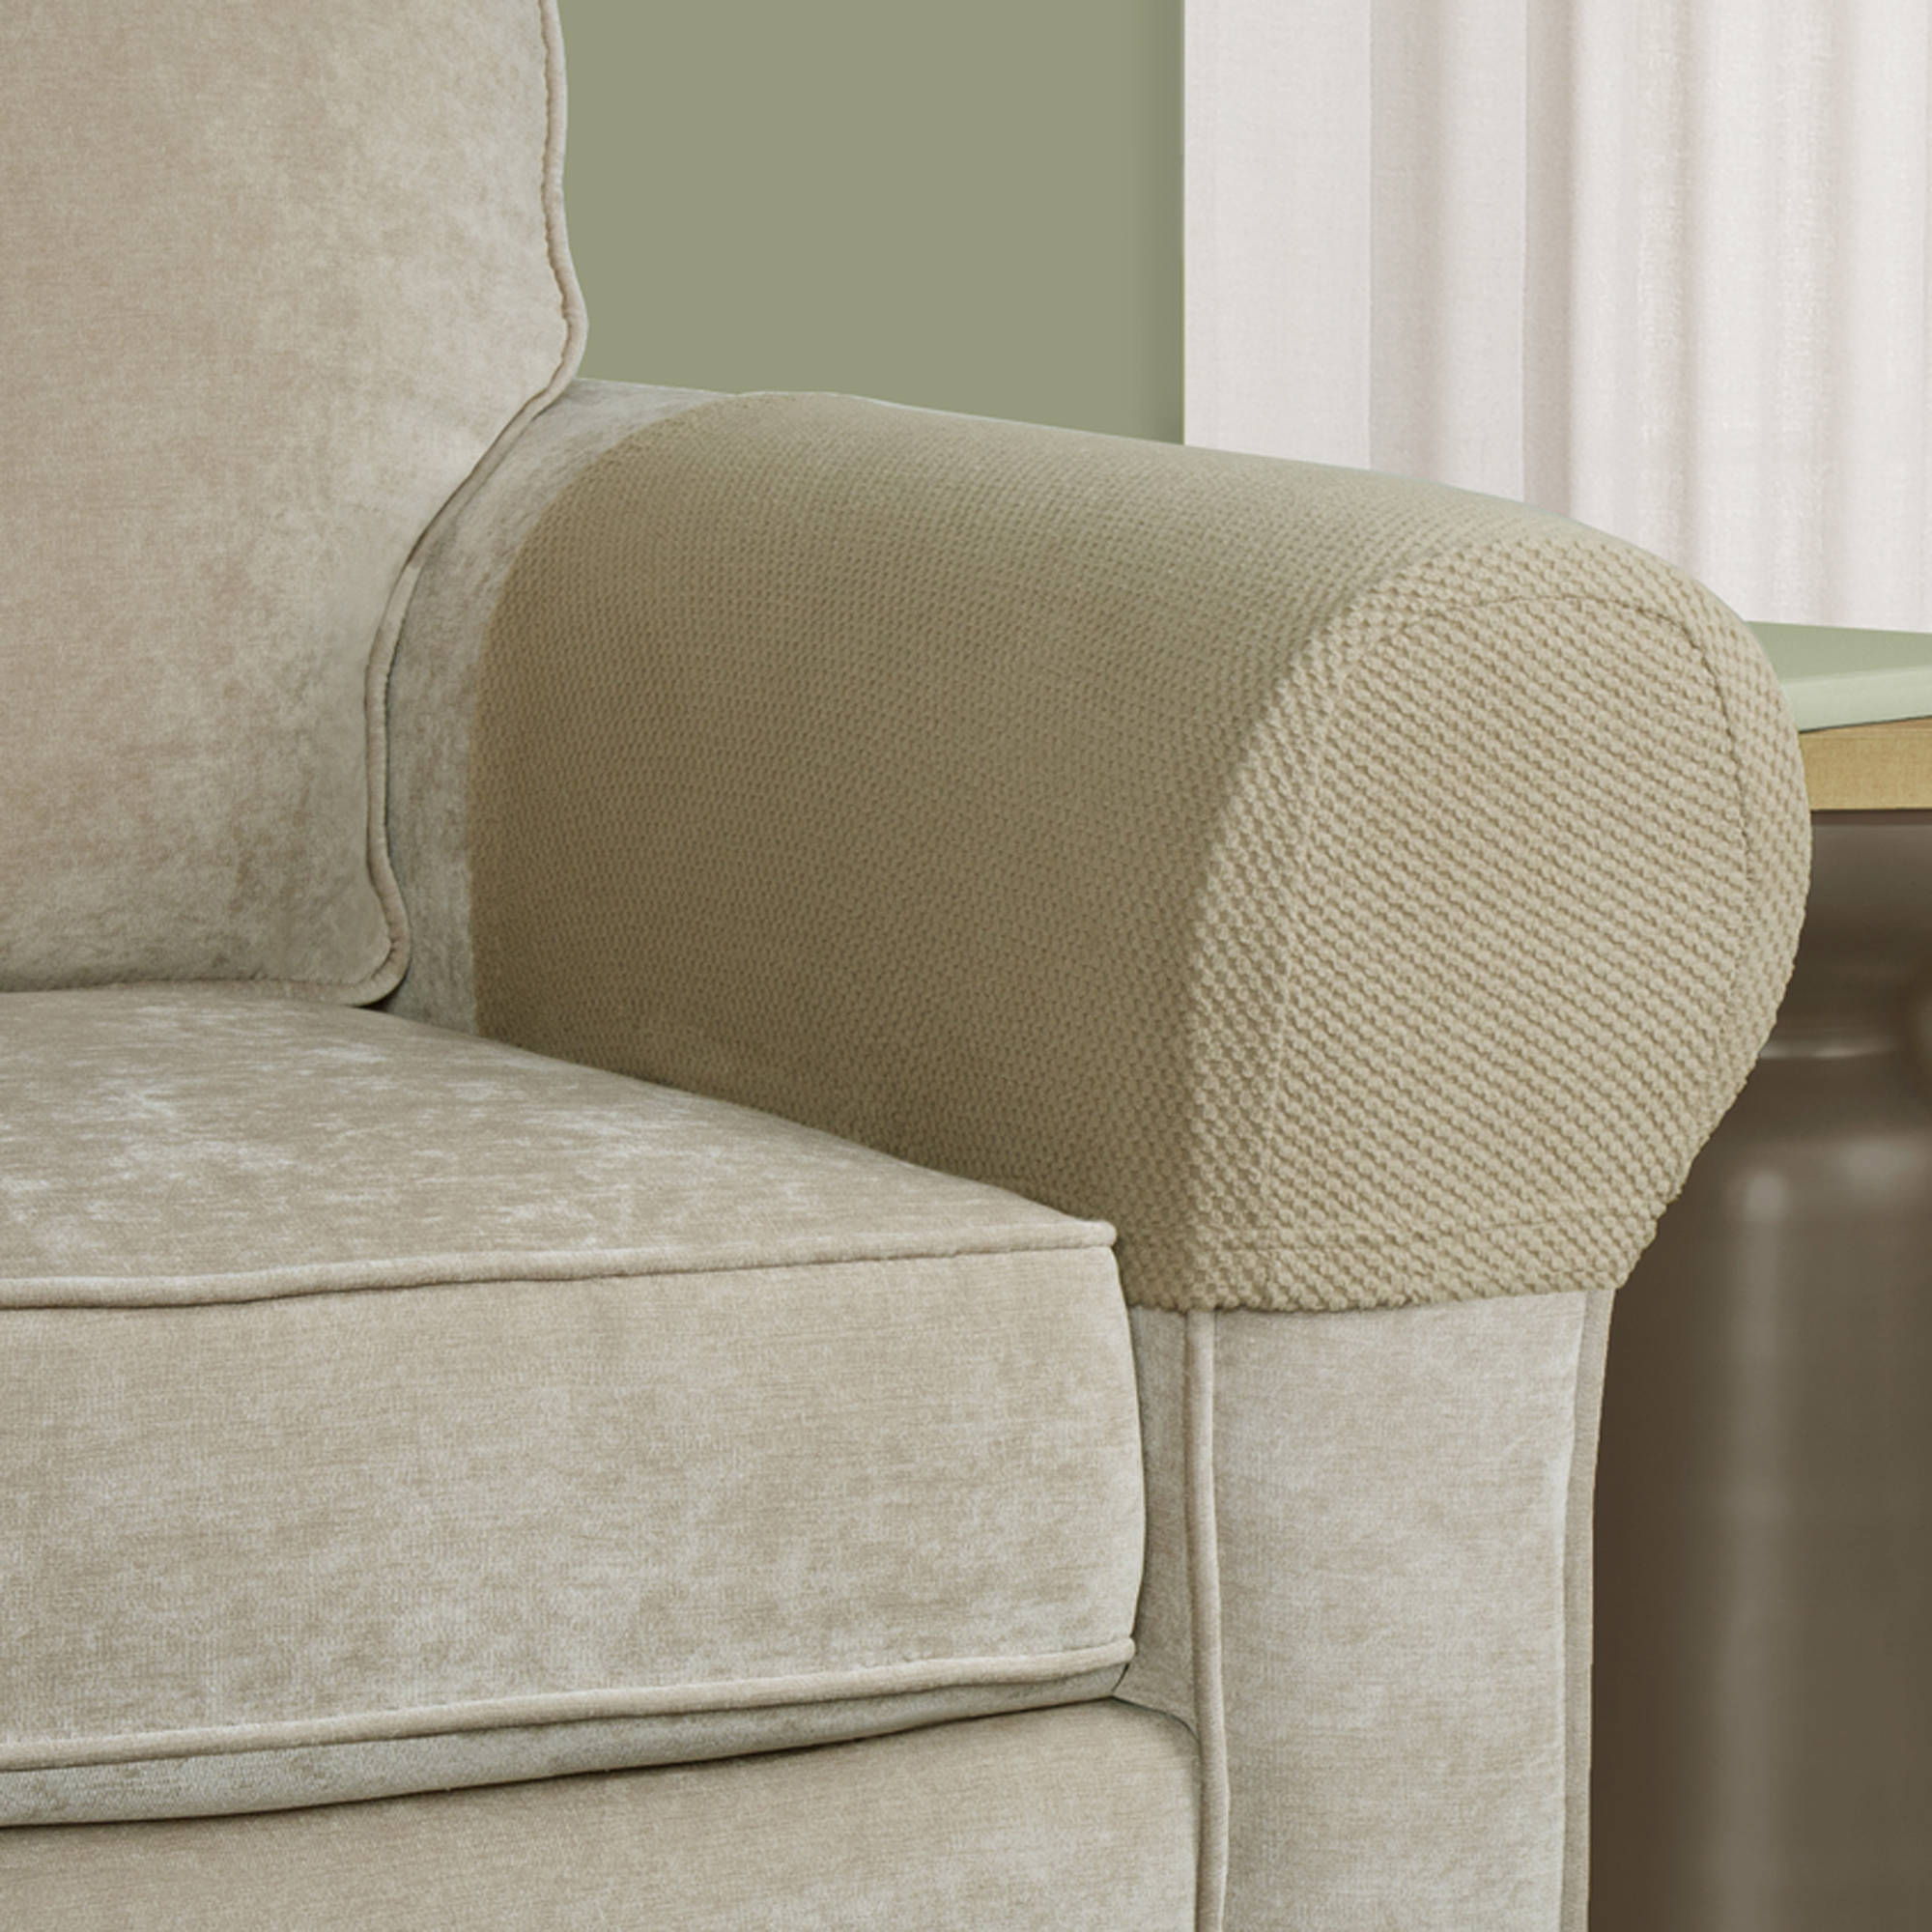 Famous Furniture: Sofa Covers At Walmart For A Slightly Loose And Casual With Sofa And Chair Slipcovers (View 18 of 20)